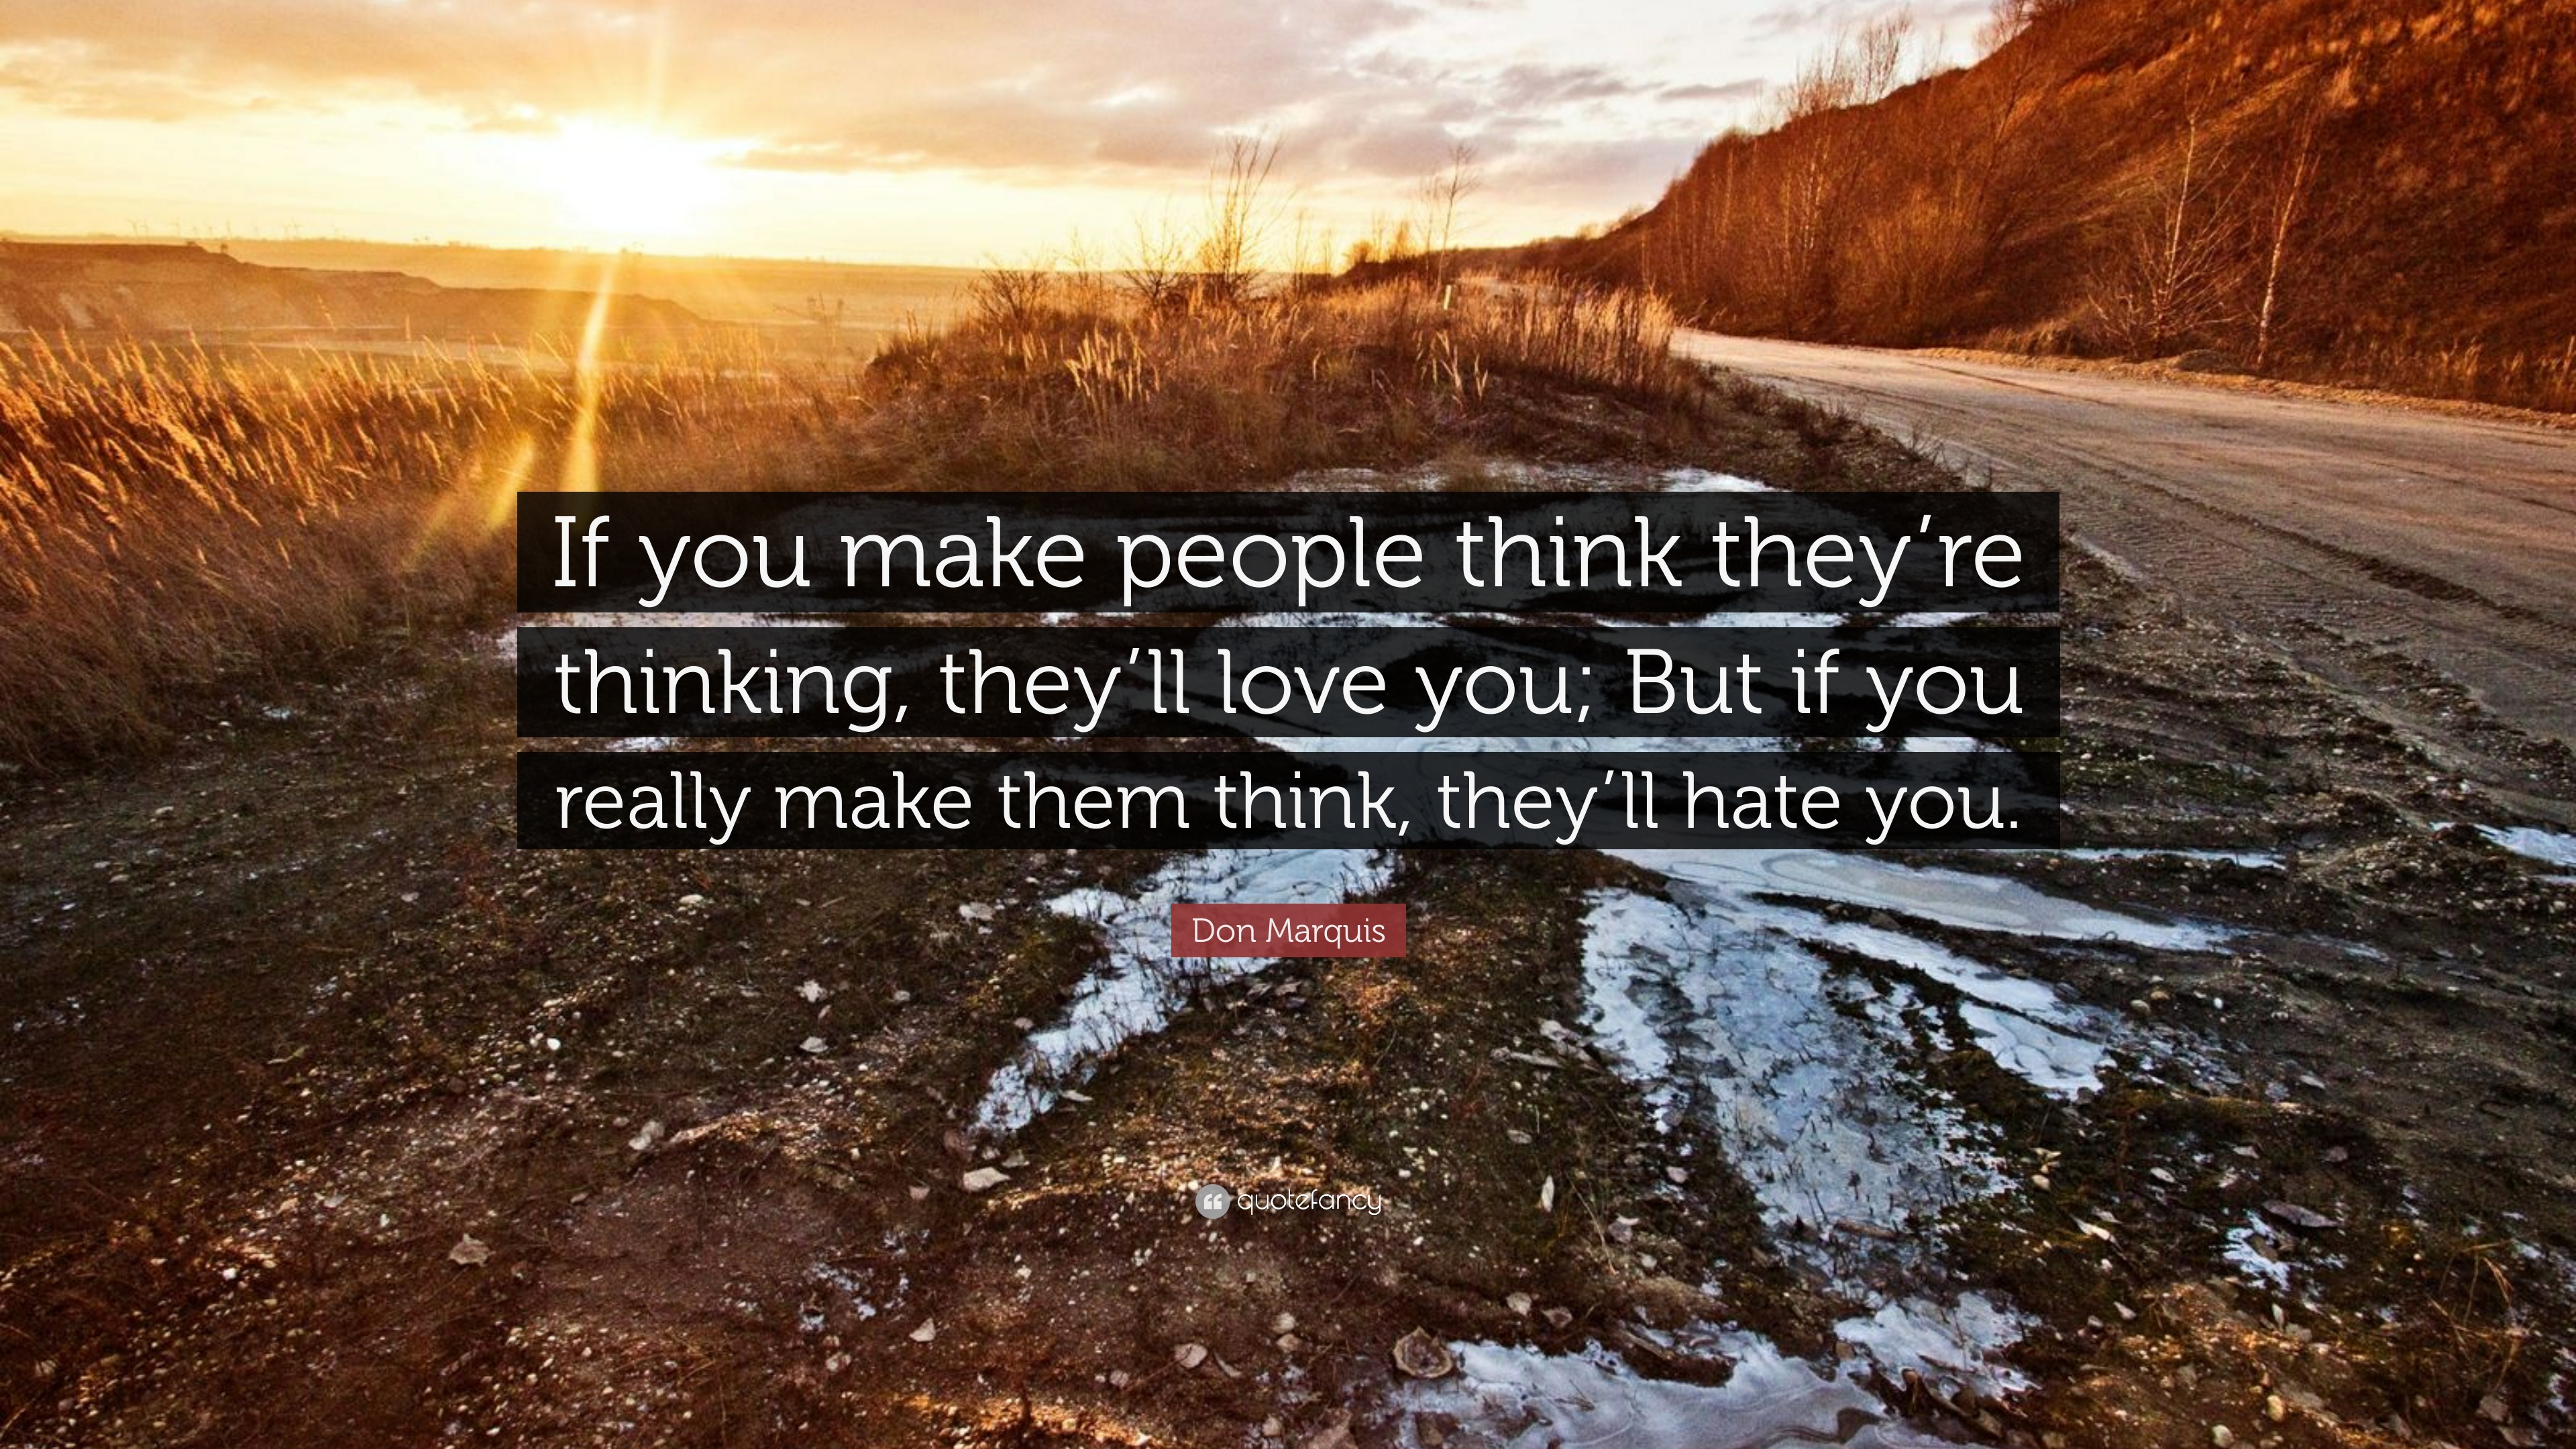 Exceptionnel Don Marquis Quote: U201cIf You Make People Think Theyu0027re Thinking, They